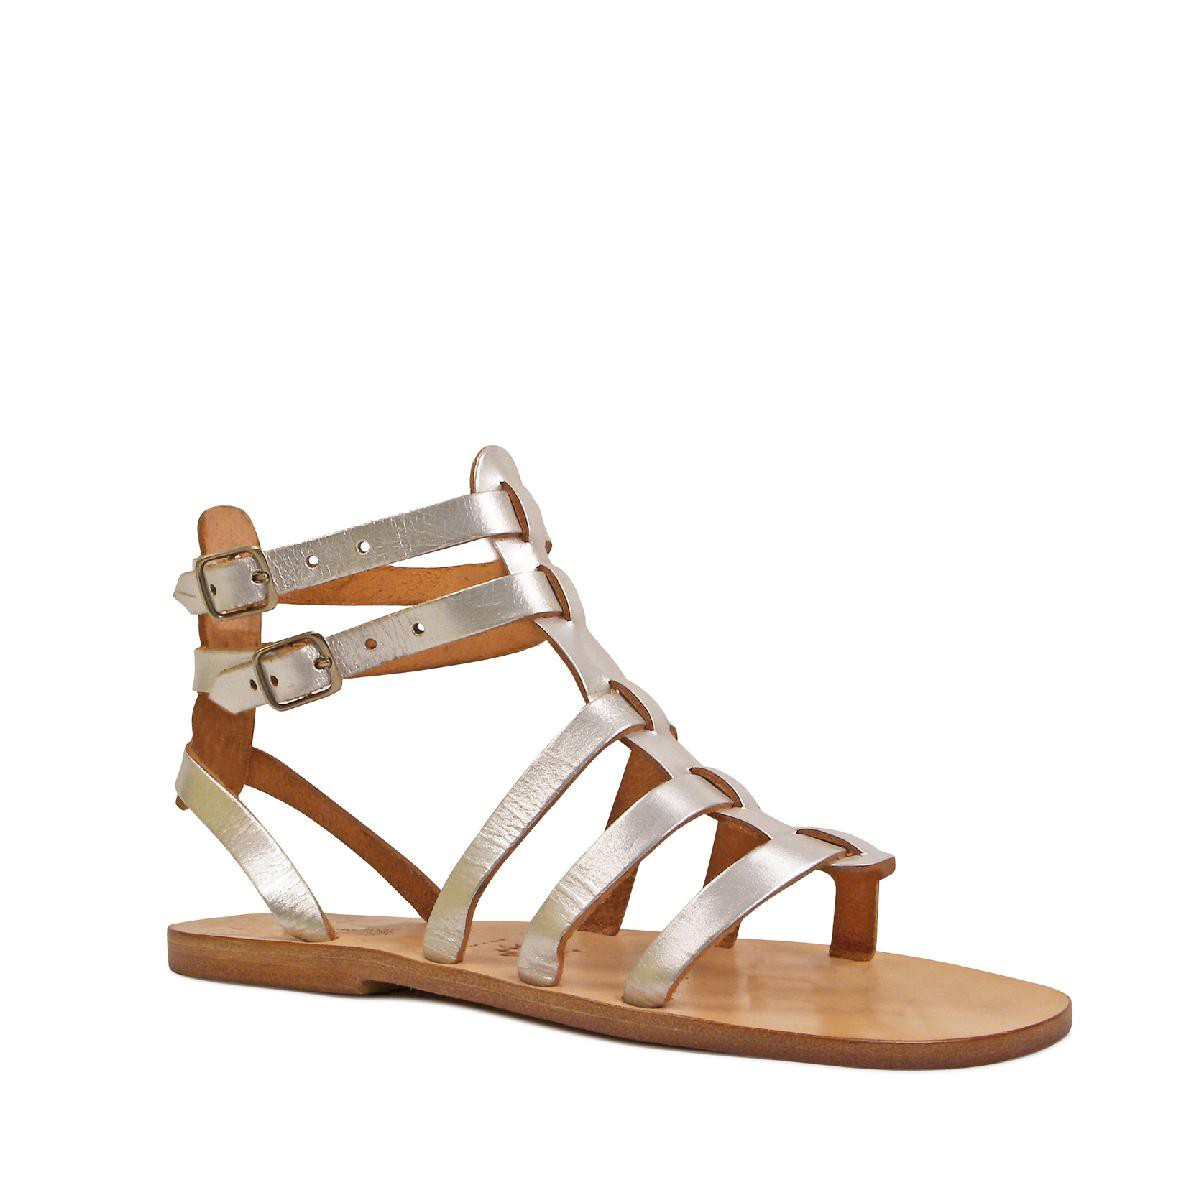 a48faab14b9 Silver gladiator sandals for women s Handmade in Italy. Loading zoom